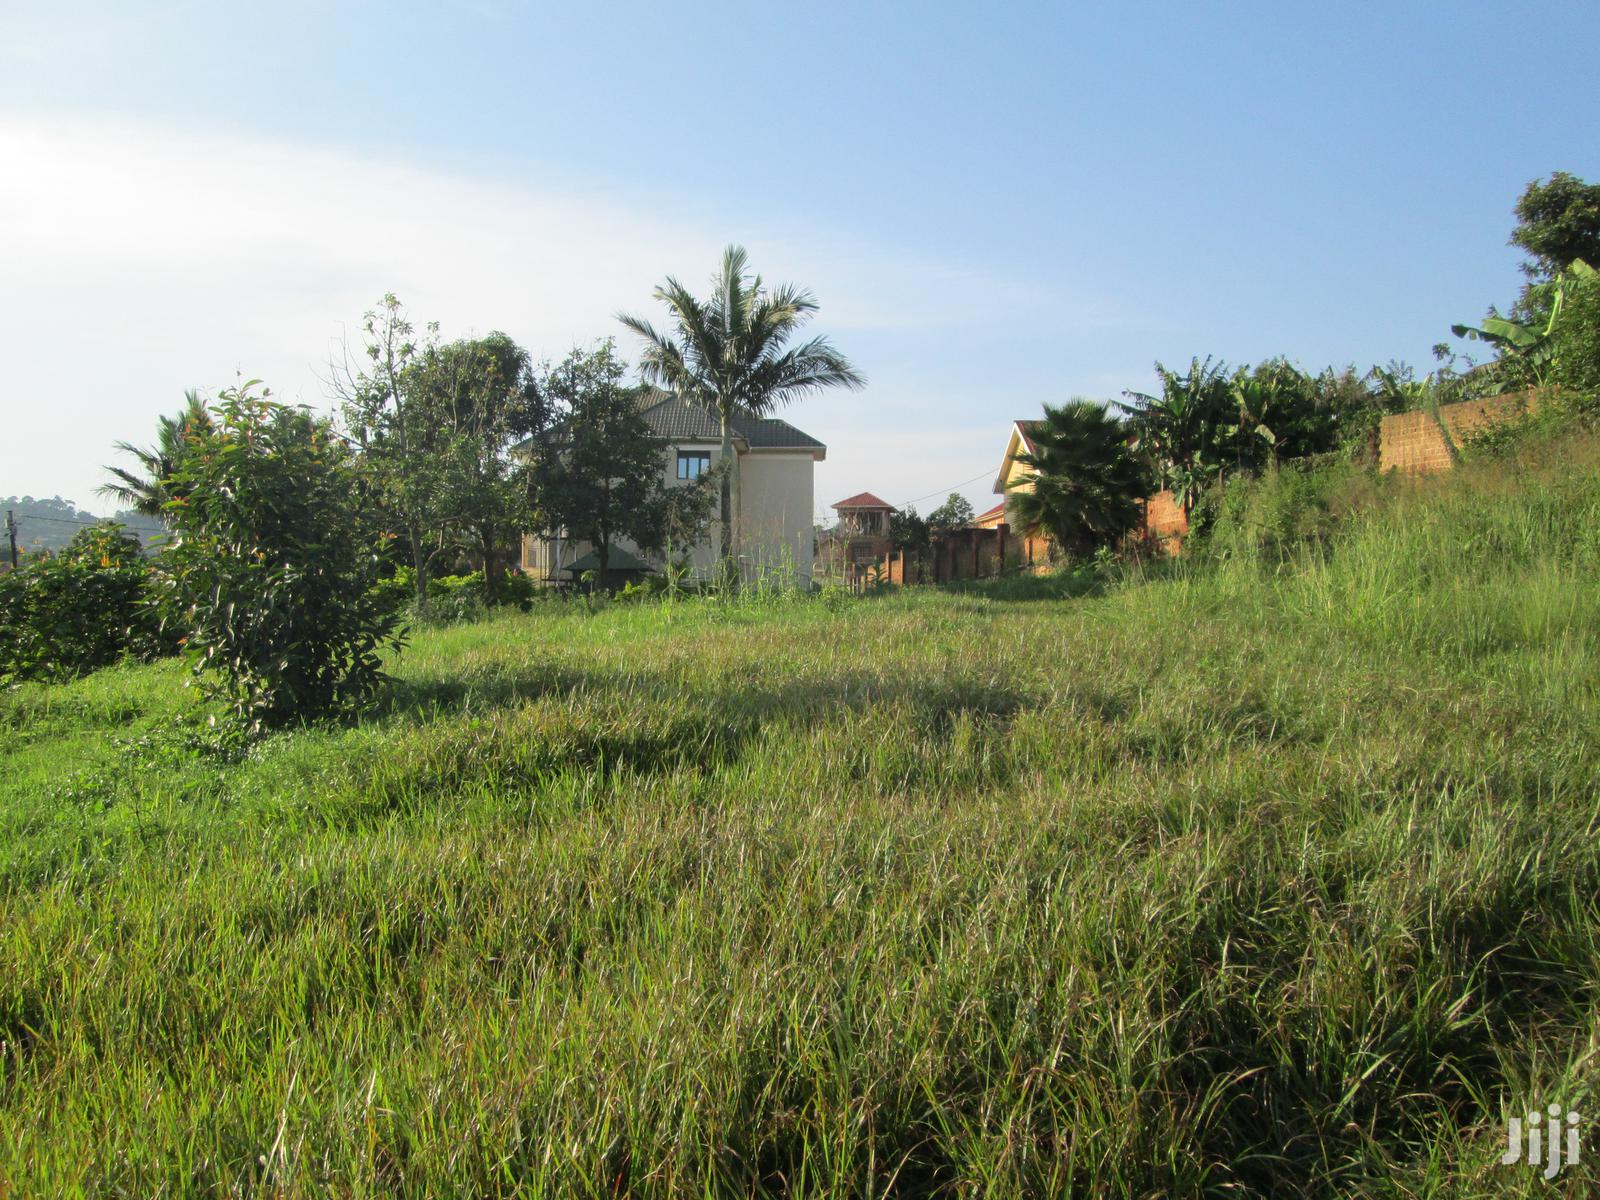 Cheap Land In Kirinya Bweyogerere Along Bukasa Road For Sale